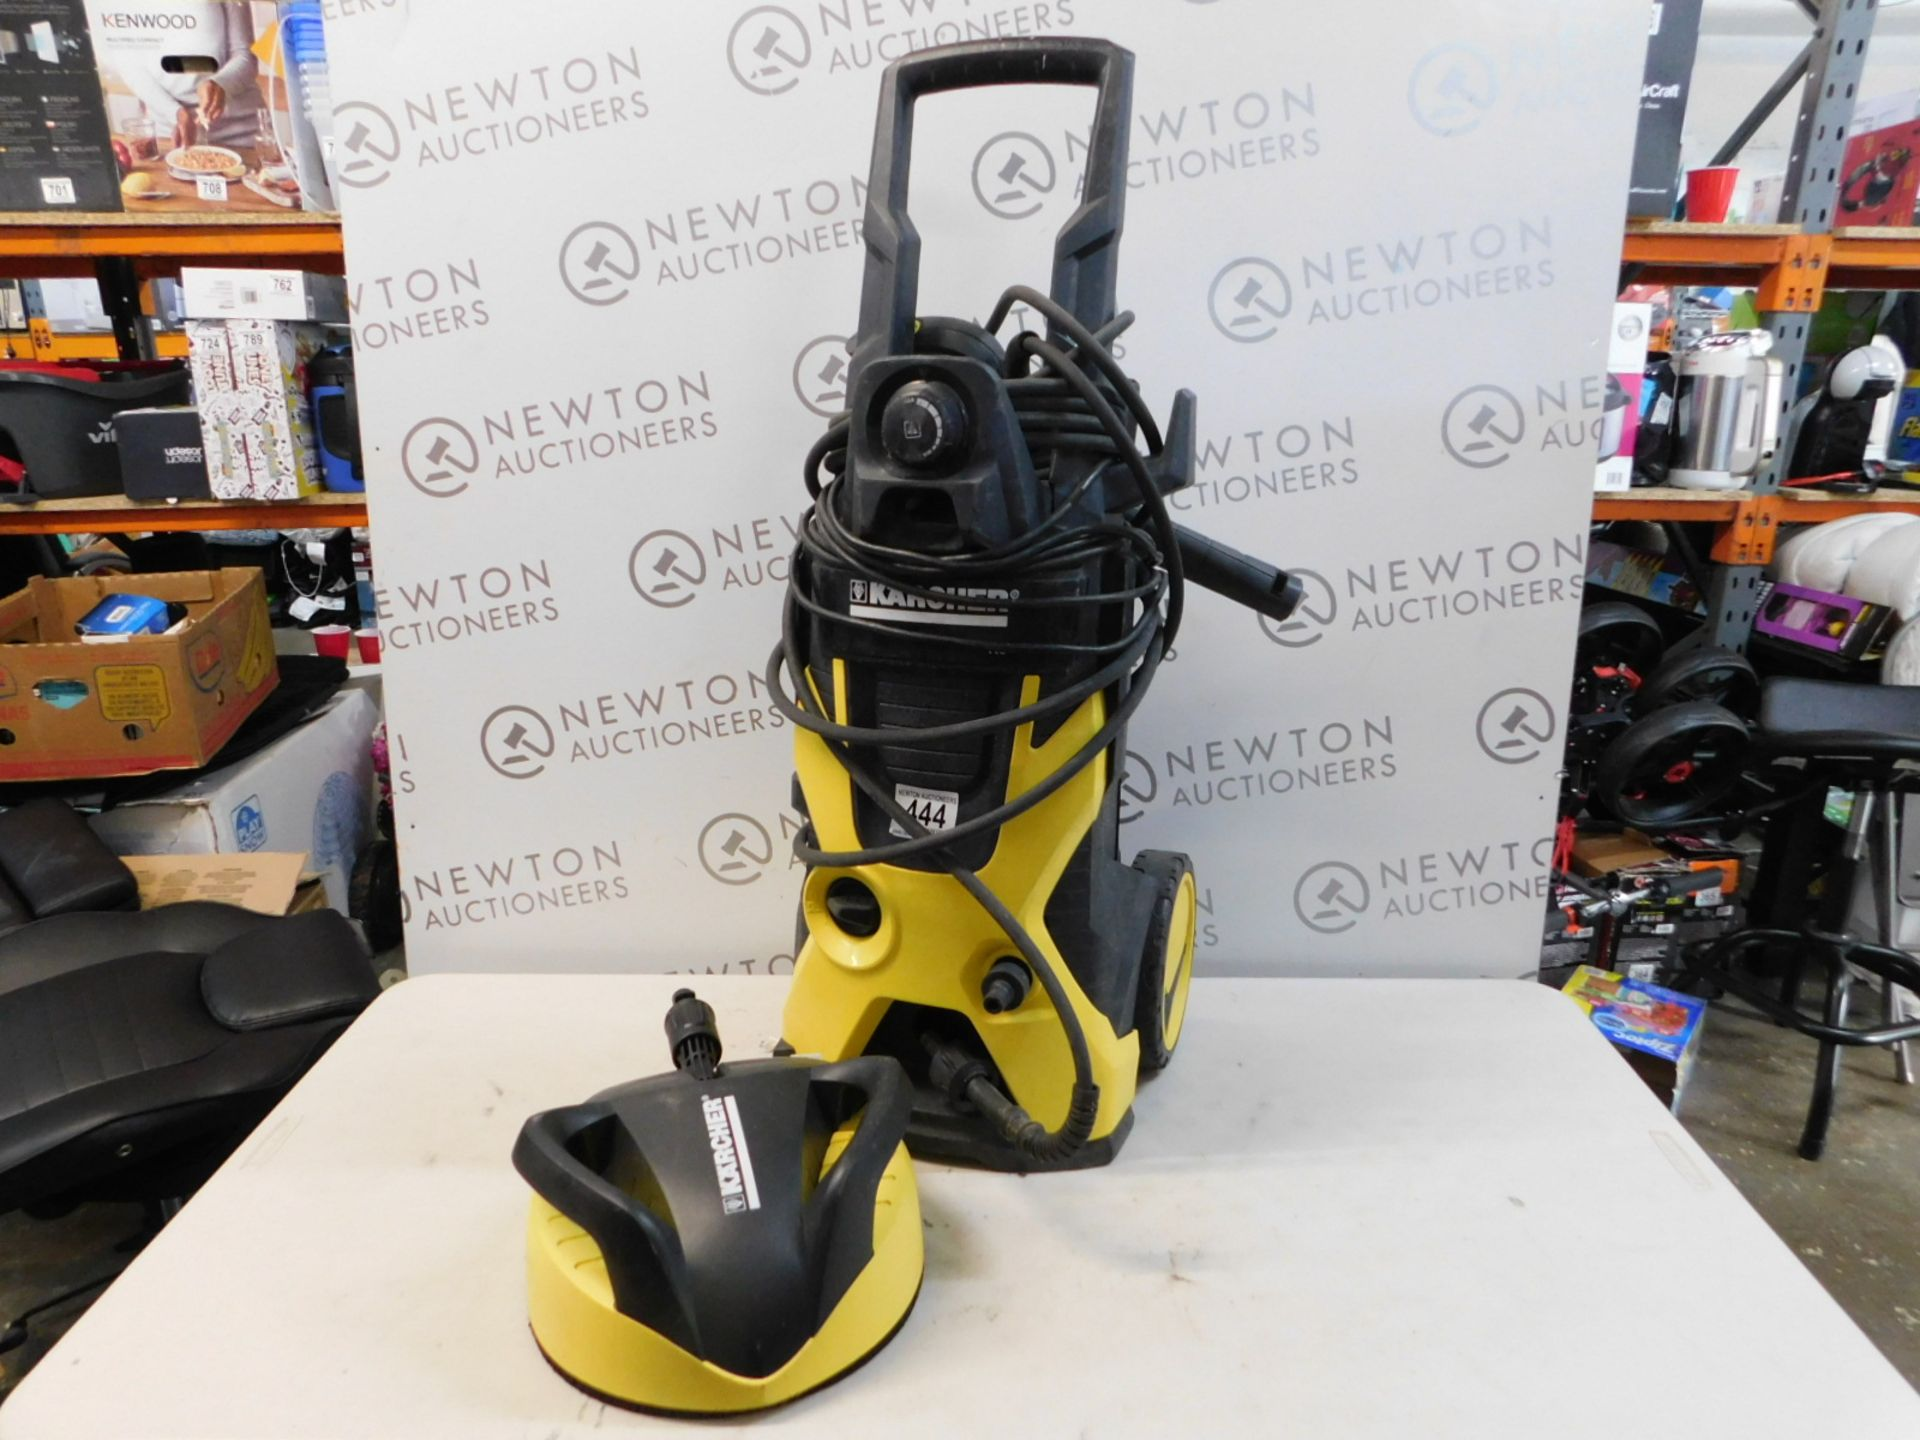 Lot 444 - 1 KARCHER K5 PREMIUM FULL CONTROL HOME PRESSURE WASHER RRP £449.99